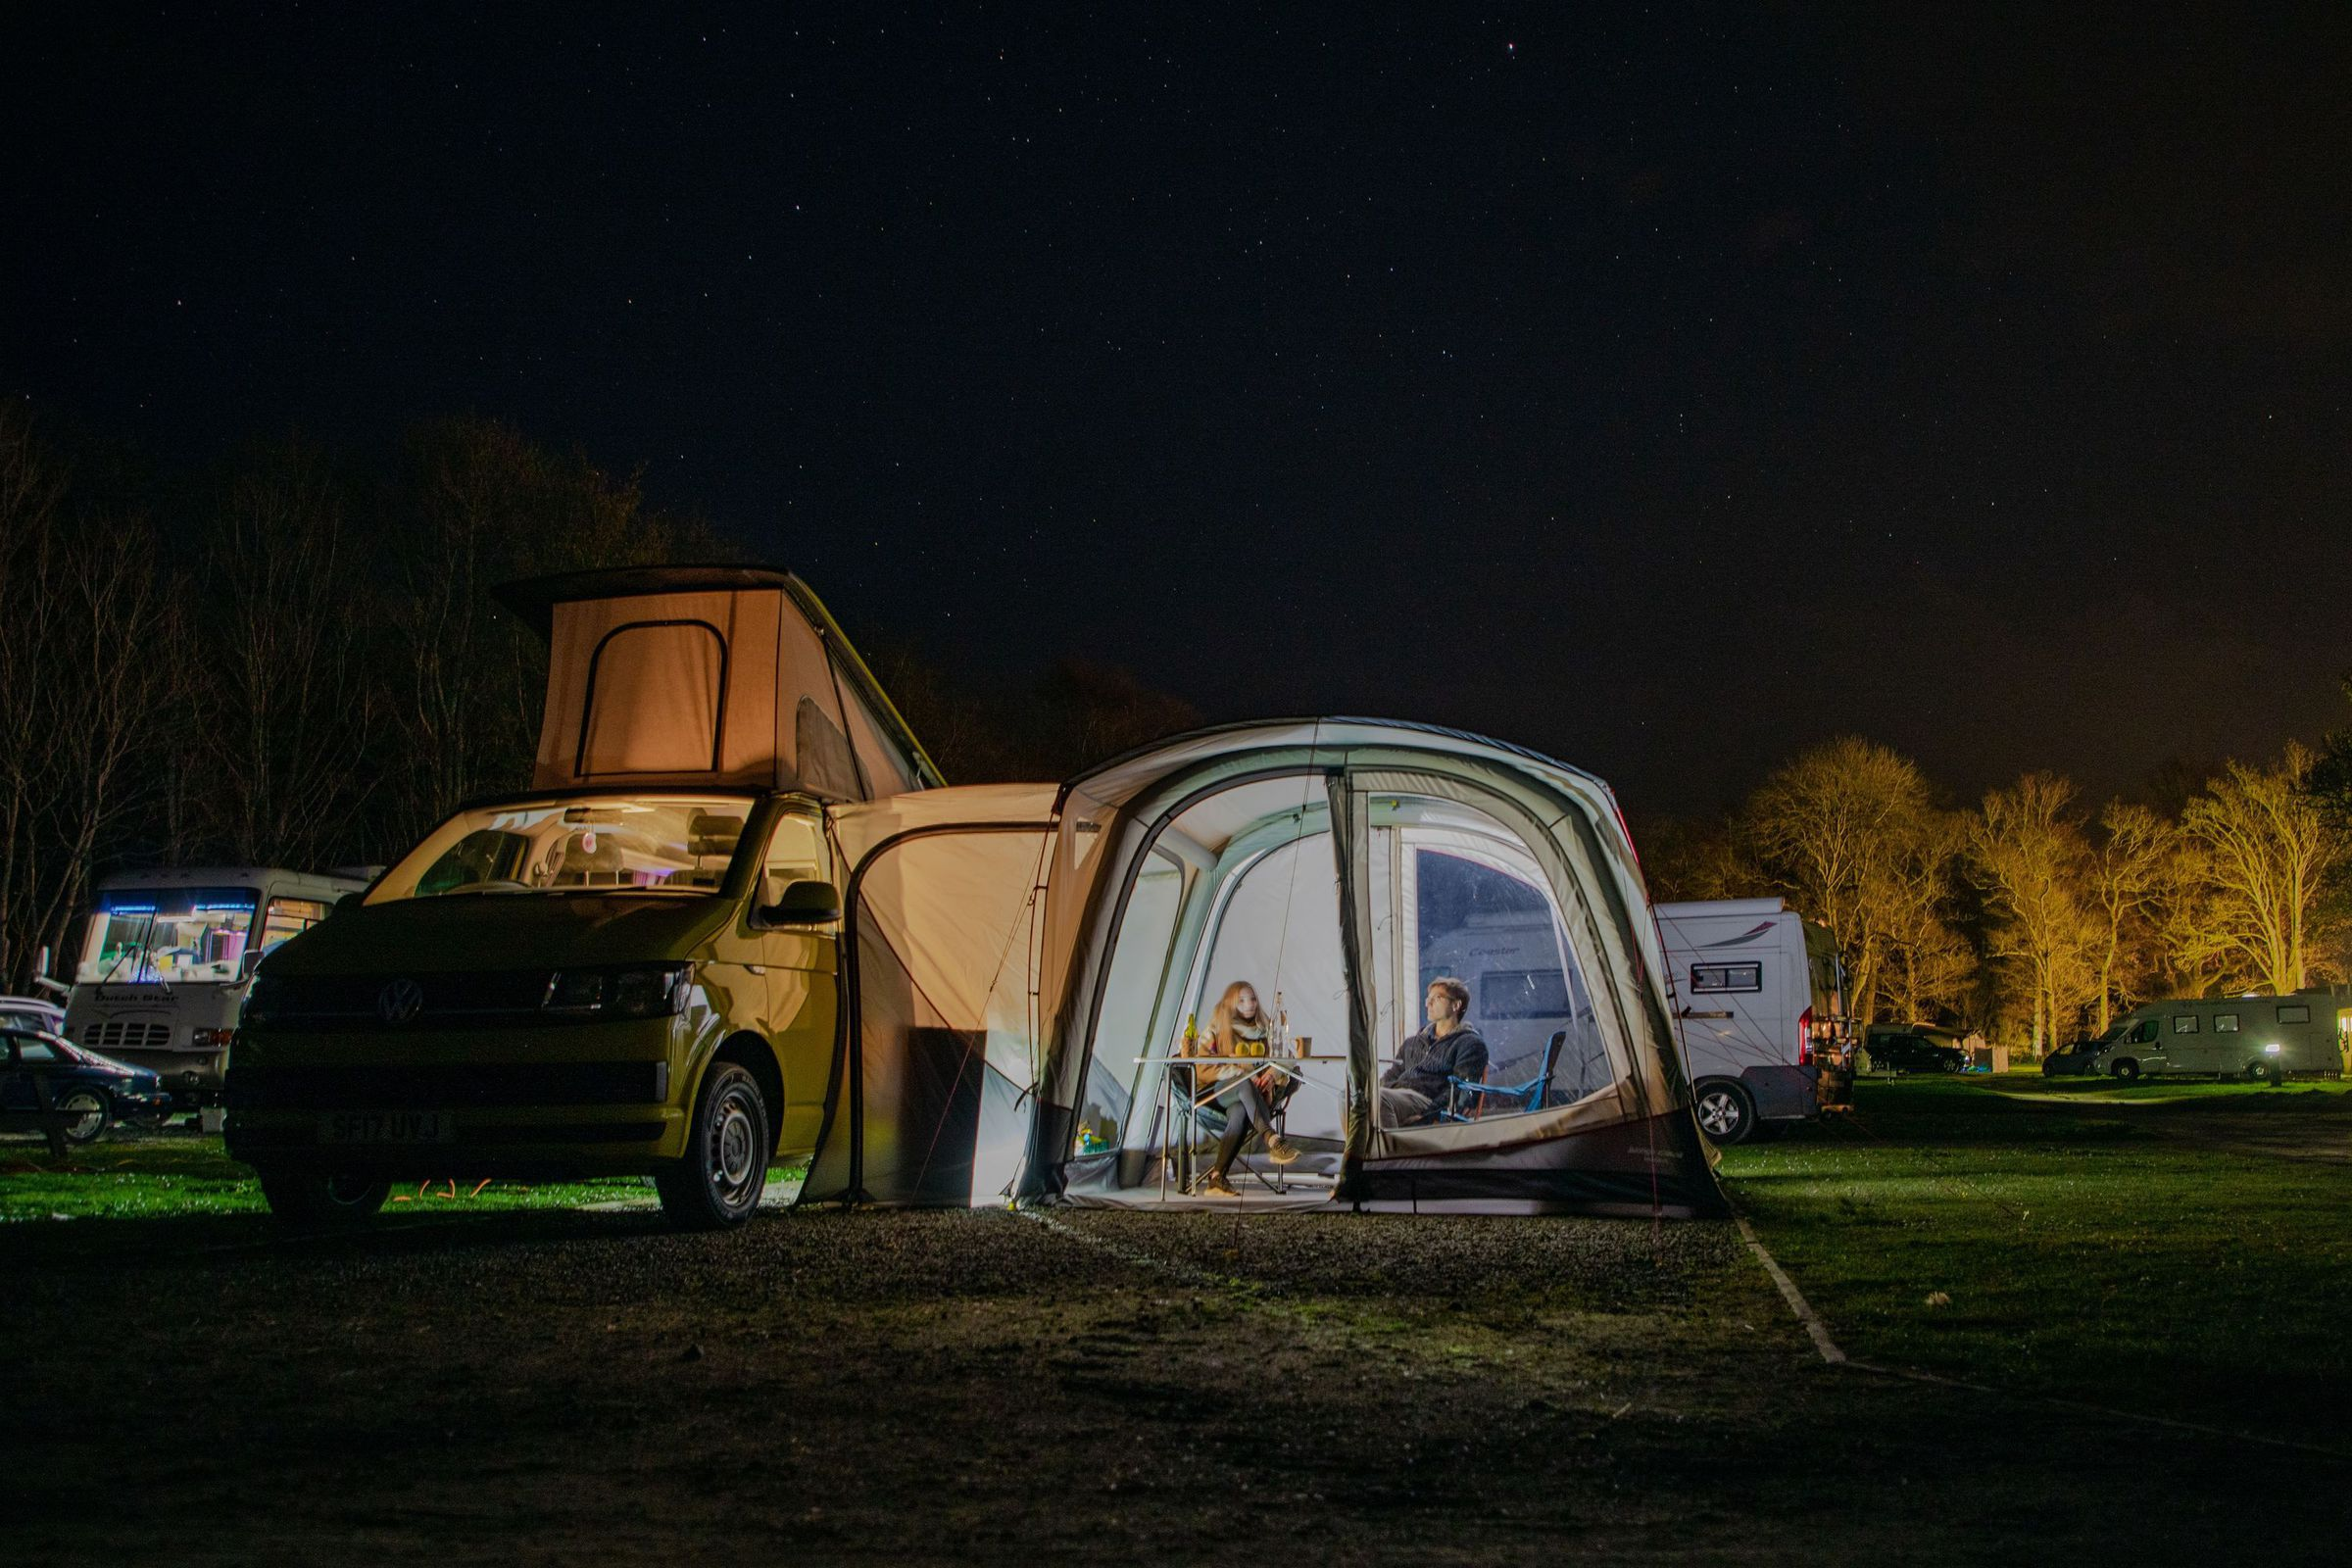 Vango Magra Vw Low Driveaway Awning Norwich Camping14